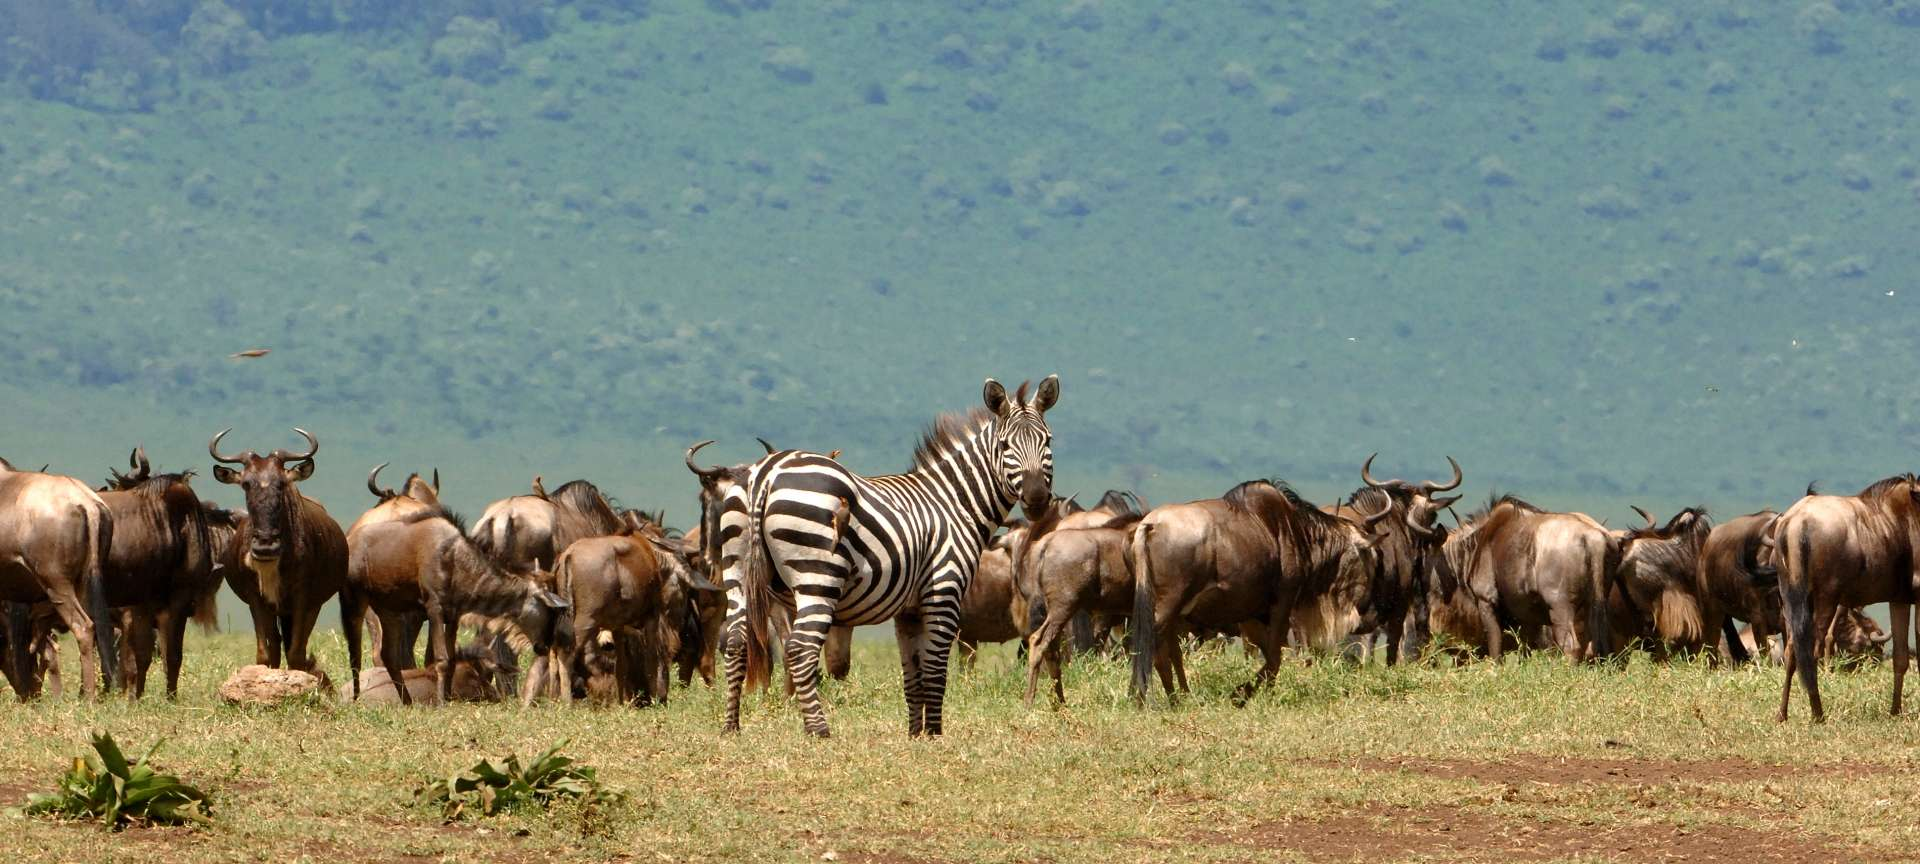 Migration safaris in Africa - Africa Wildlife Safaris